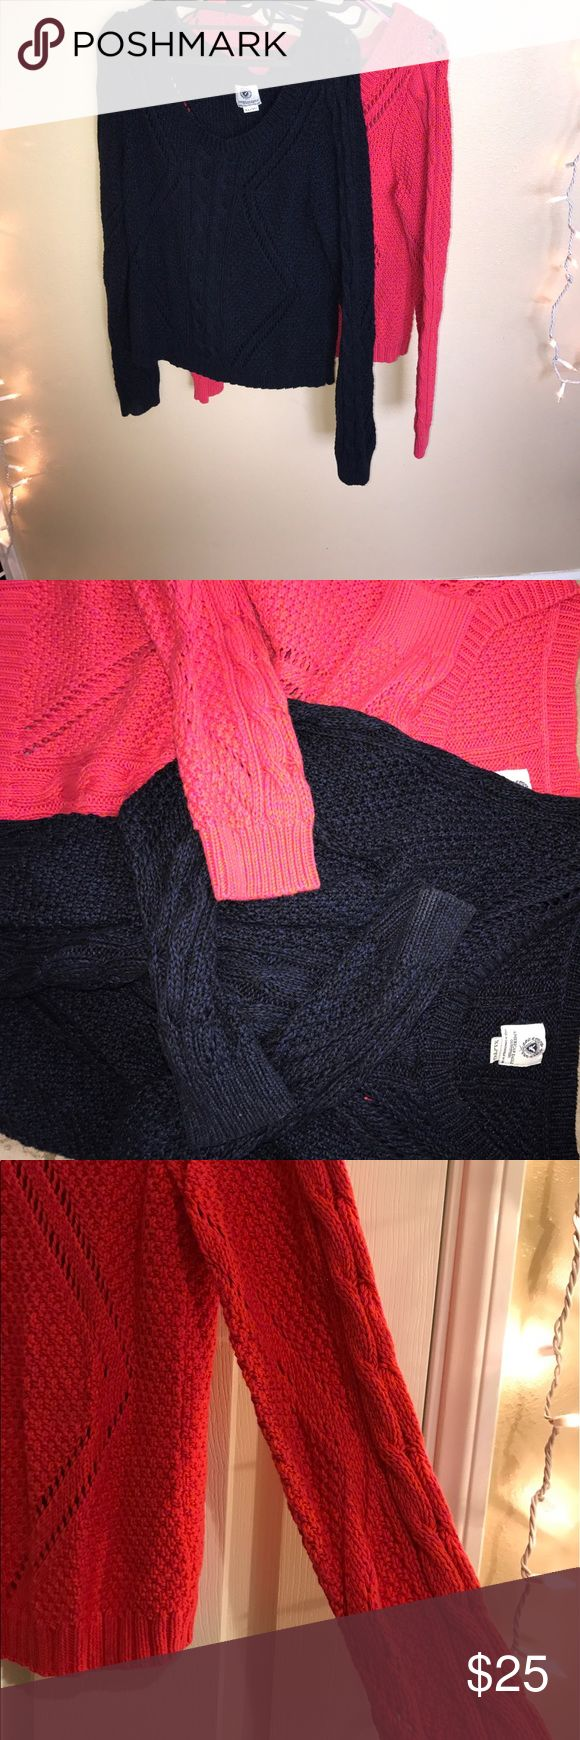 American Eagle sweater bundle 2 American Eagle sweaters. One is pink with orange tones and the other is blue with black tones. Pictures show exact detail! Worn a few times. Perfect with a pair of jeans! Offering a bundle to save on shipping! American Eagle Outfitters Sweaters Crew & Scoop Necks